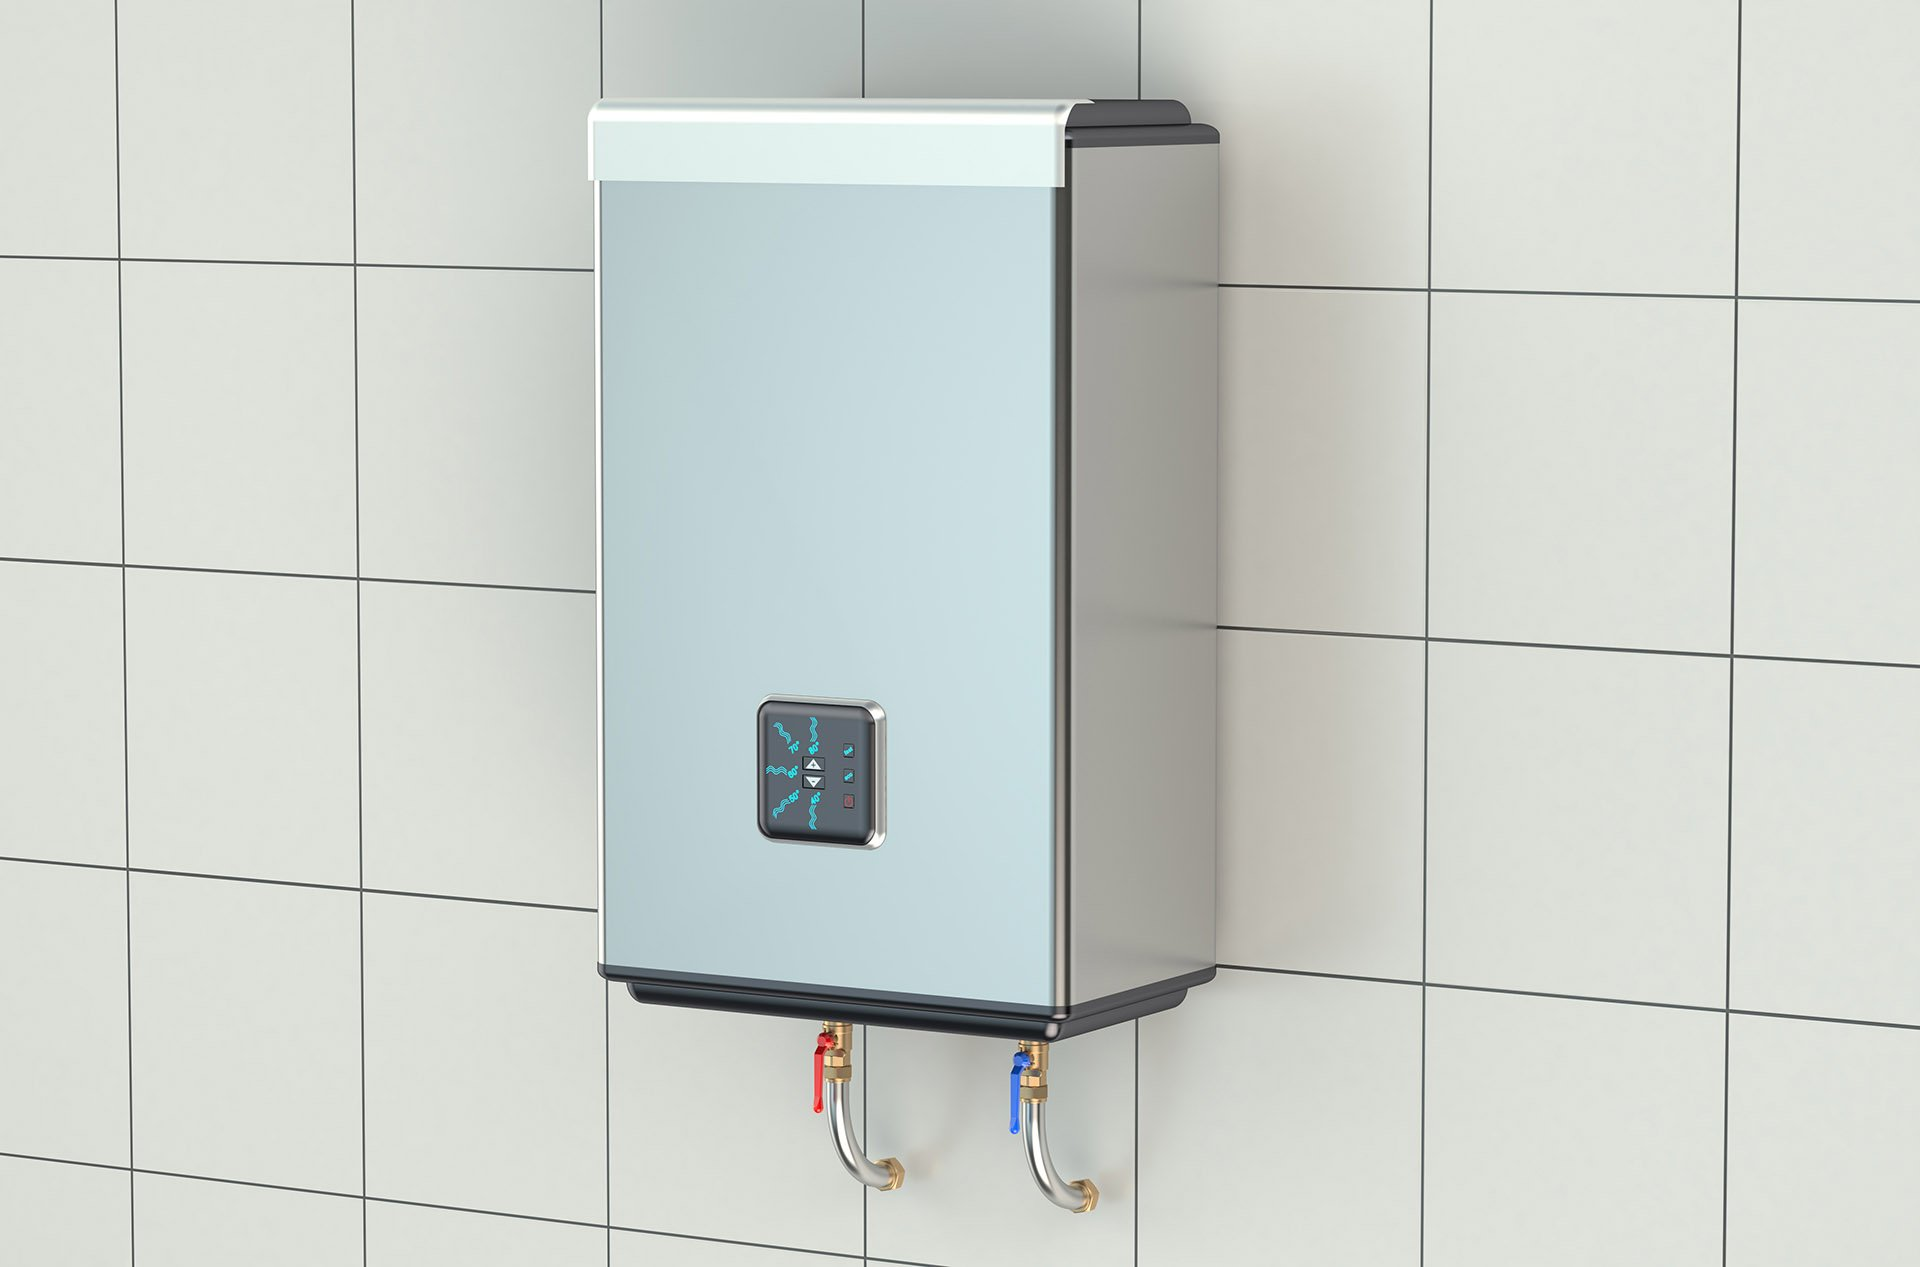 Tankless Water Heaters: 7 Things You Should Know - AHS Blog